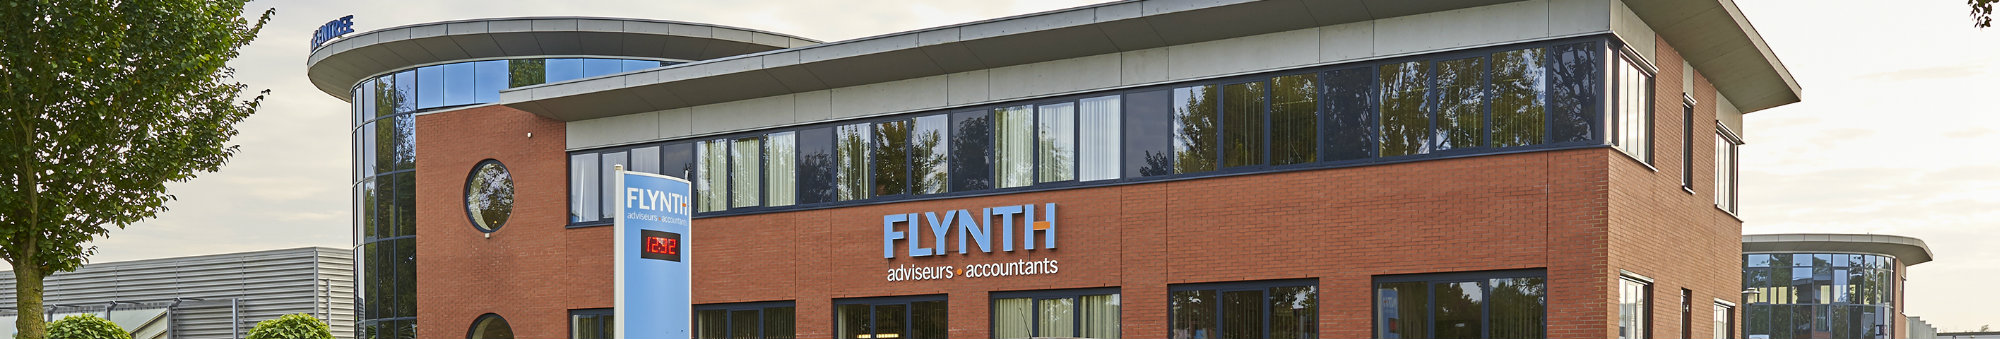 Flynth adviseurs en accountants in Schagen